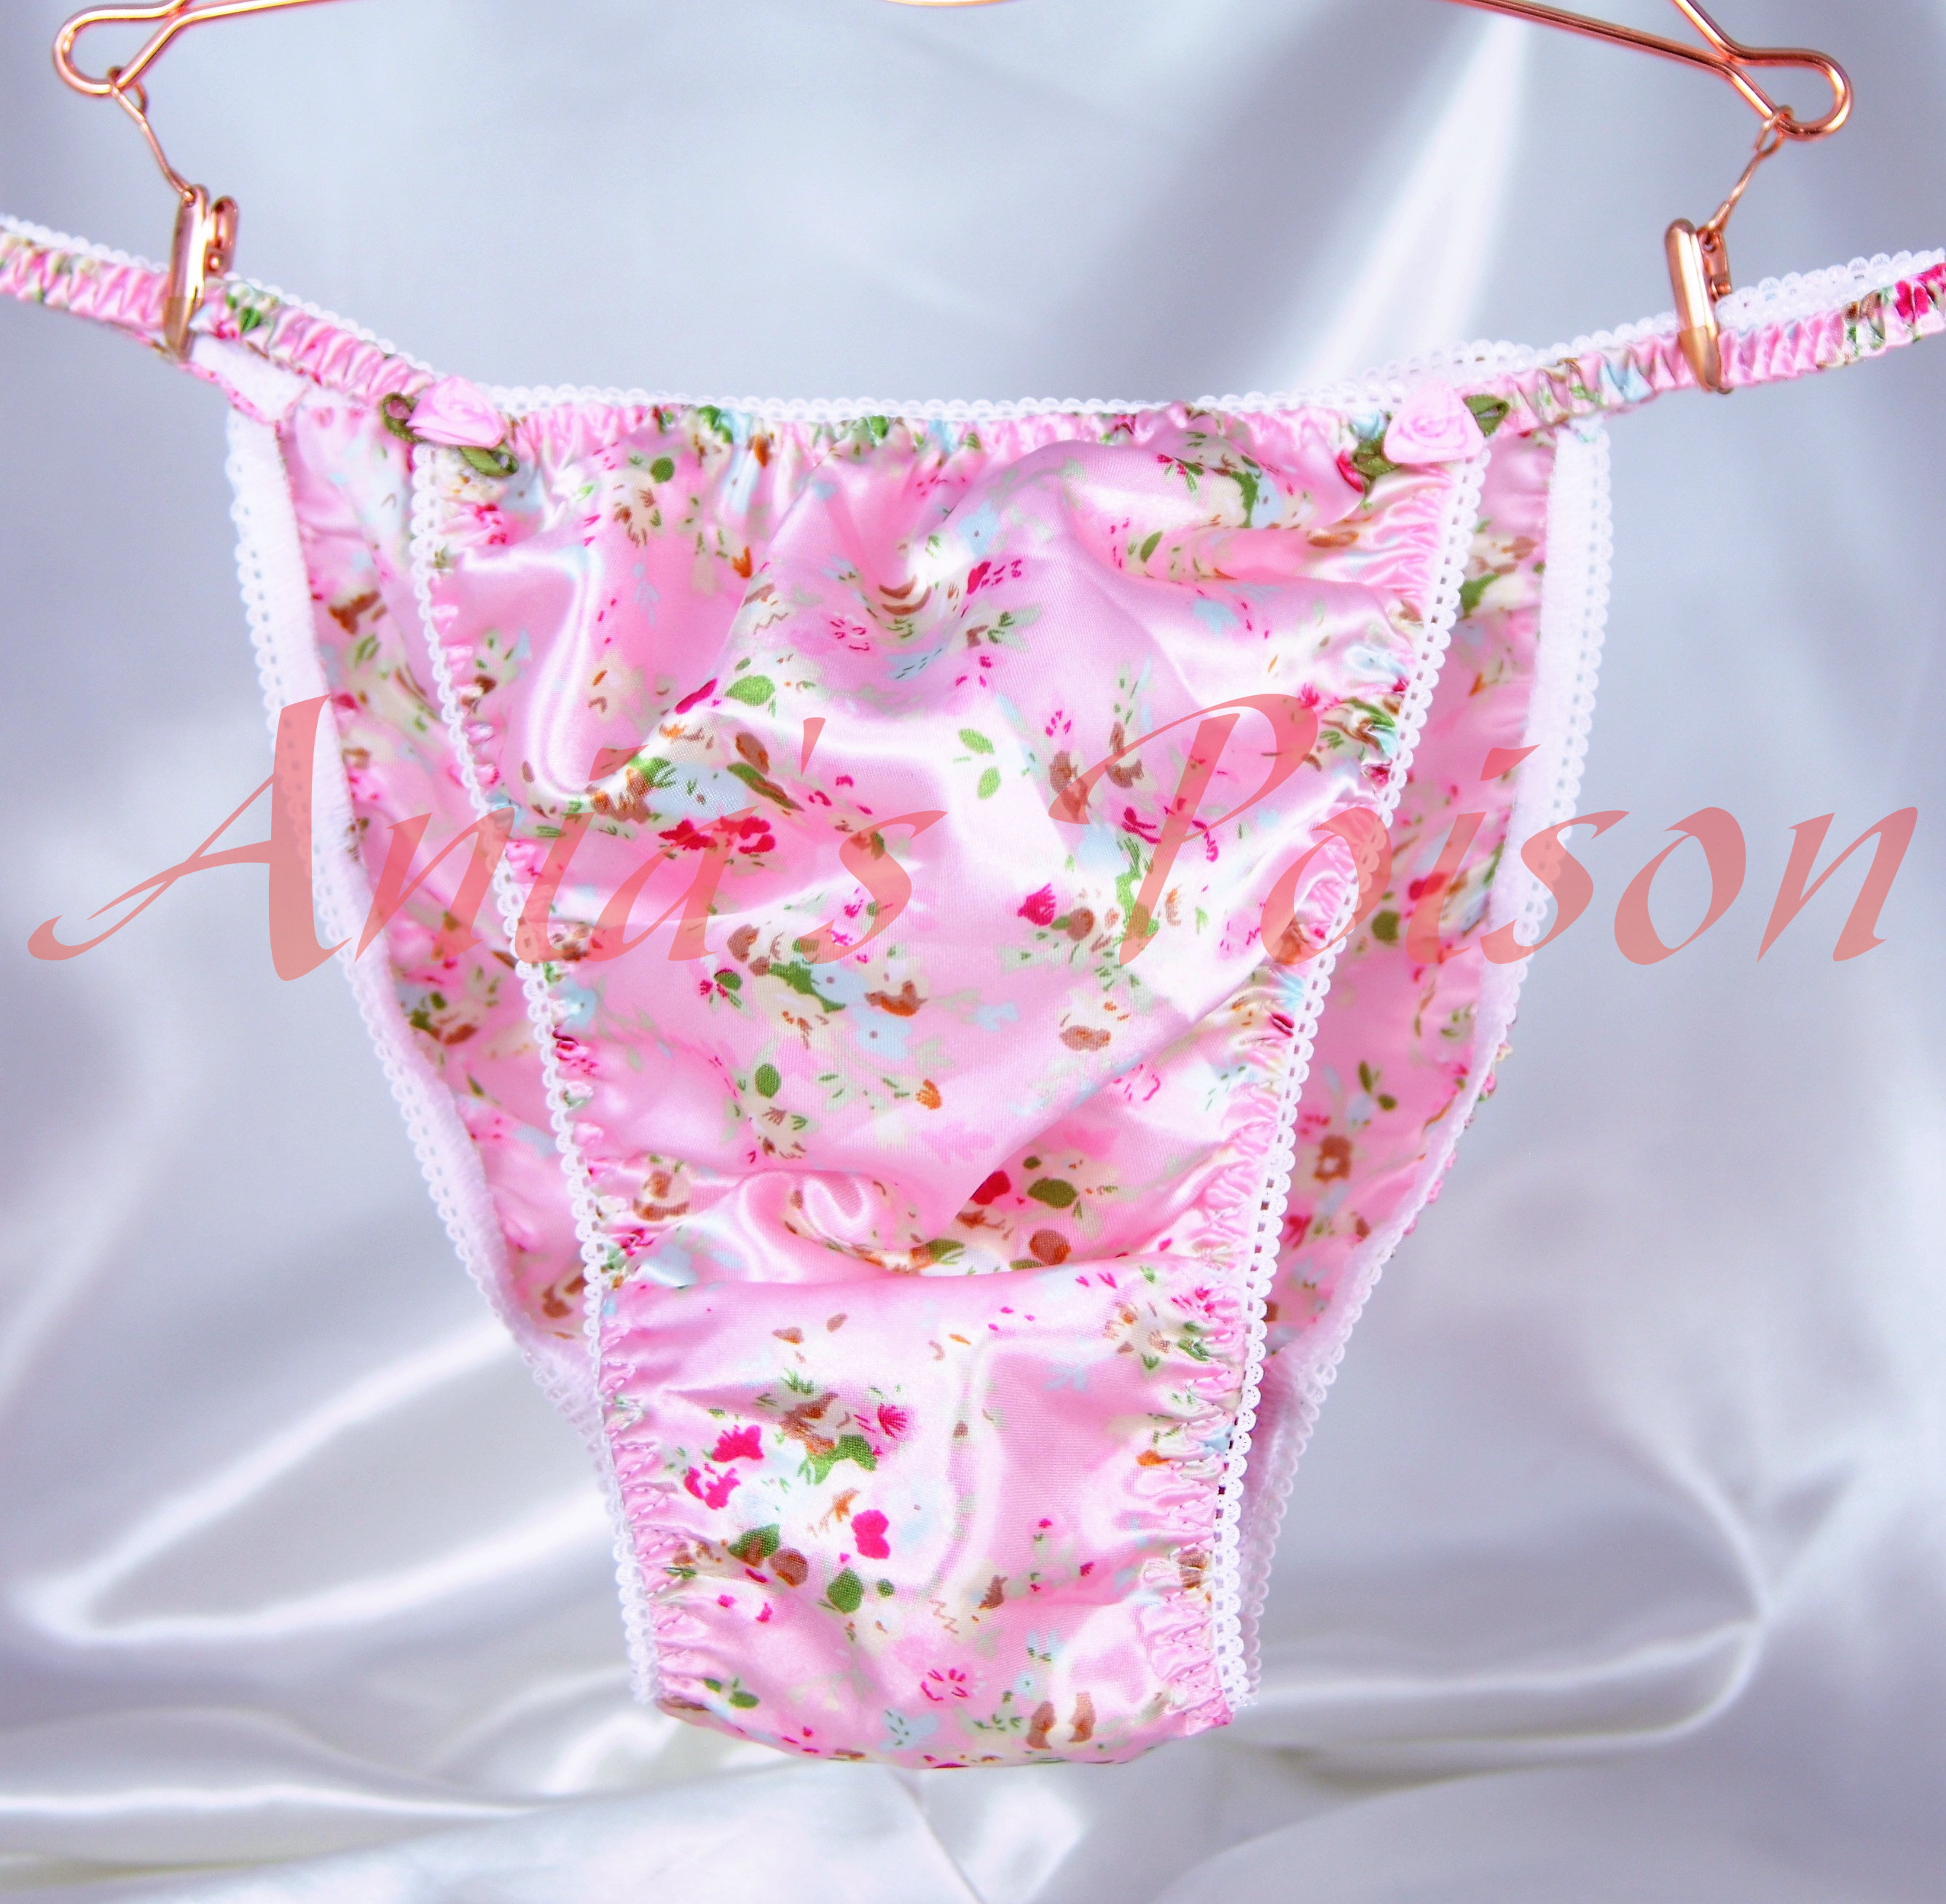 Ania's Poison MANties S - XXL Floral Easter Novelty Prints Super Rare 100% polyester string bikini sissy mens underwear panties 00170